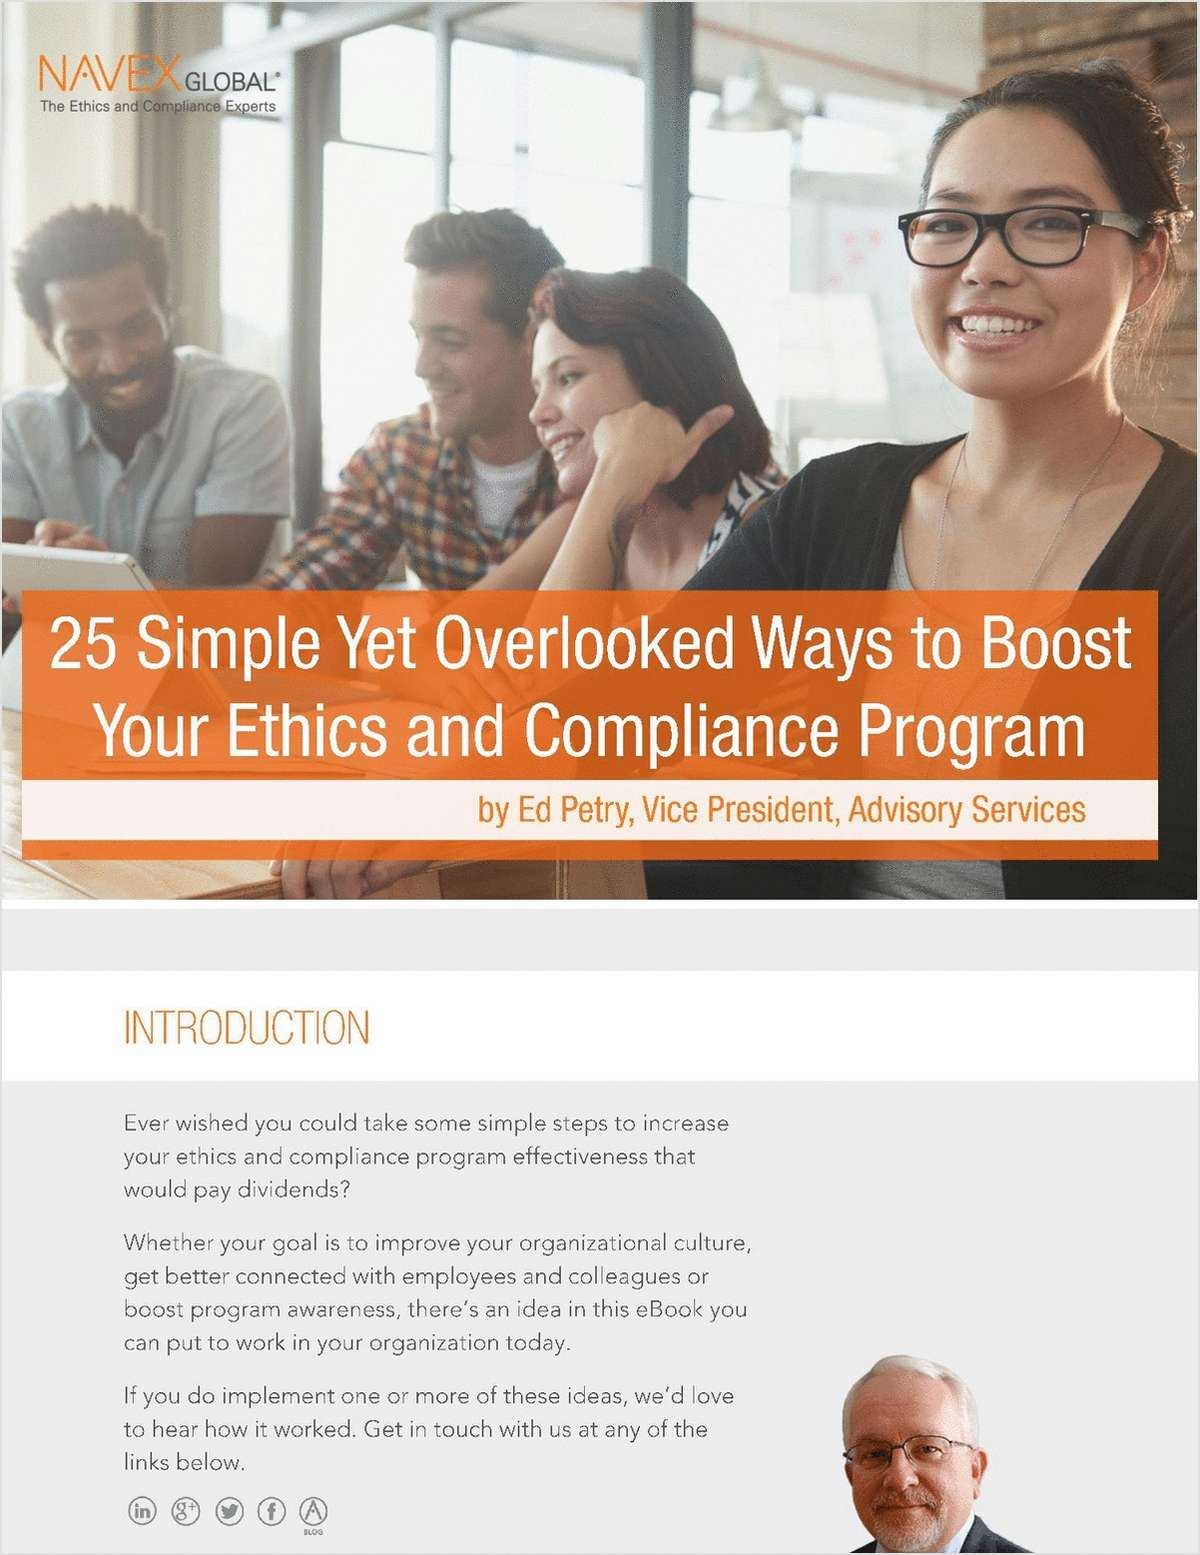 25 Simple Yet Overlooked Ways to Boost Your Ethics and Compliance Program